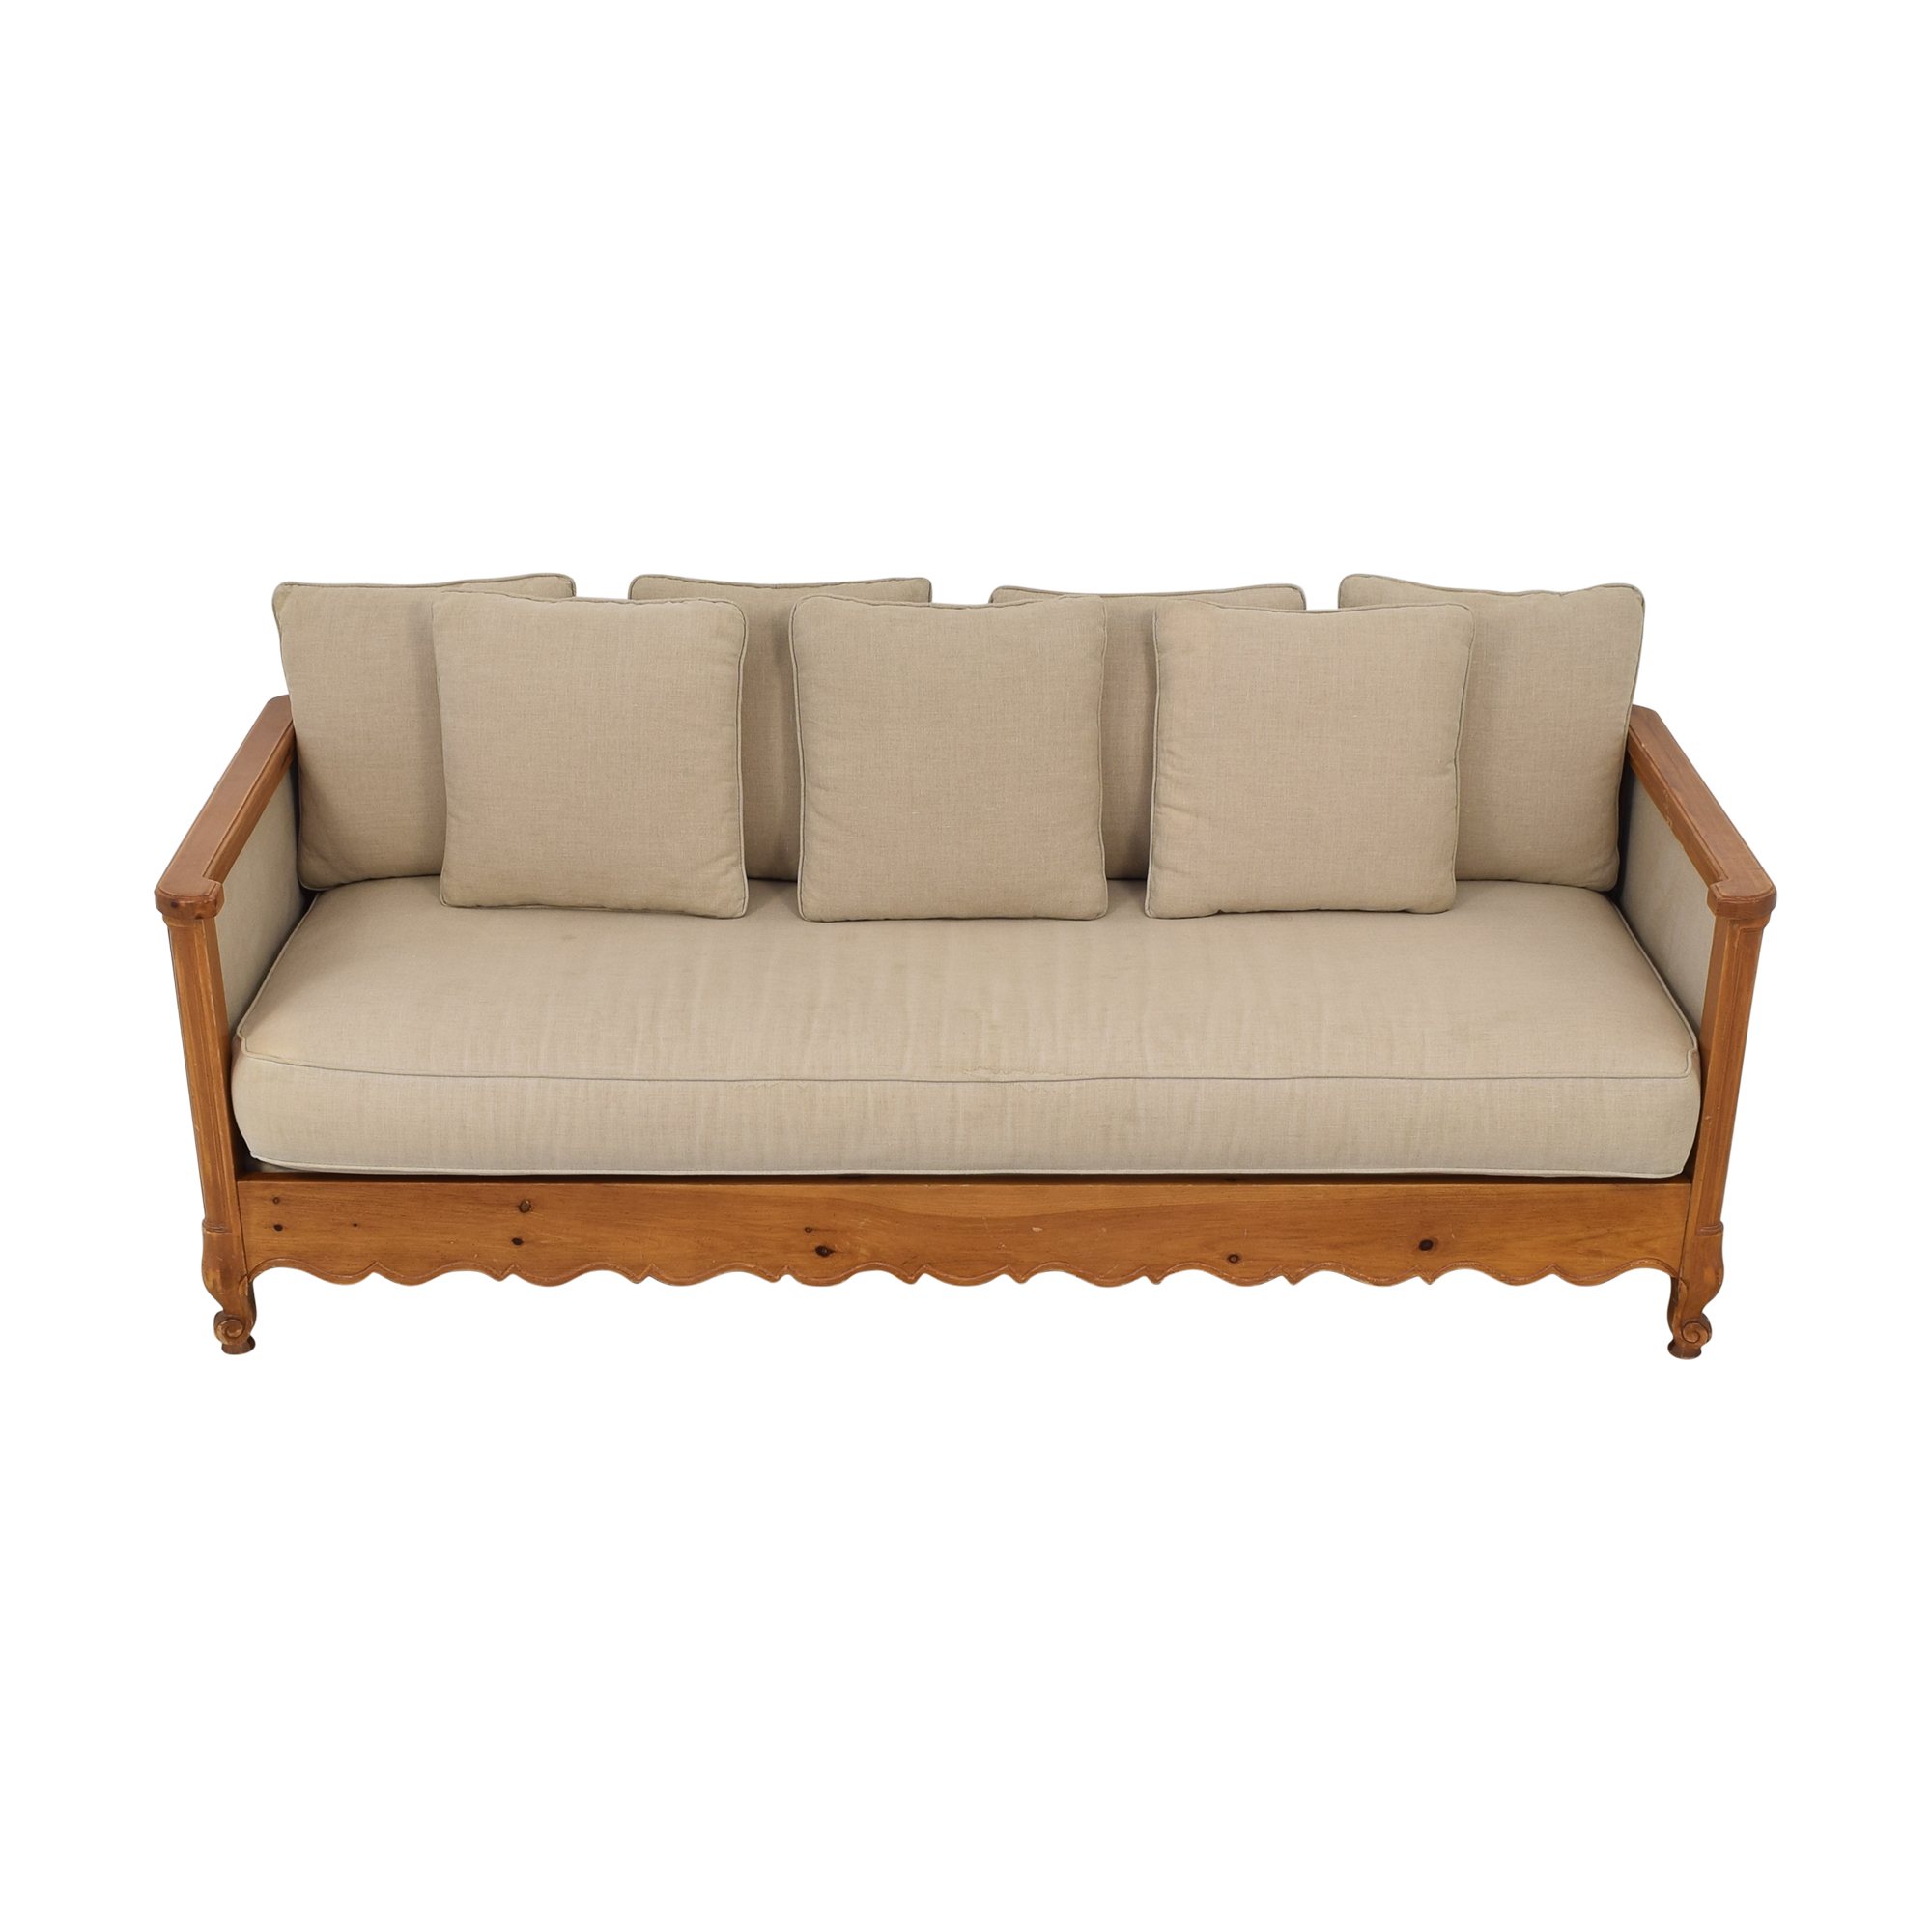 Wood Frame Sofa tan and brown